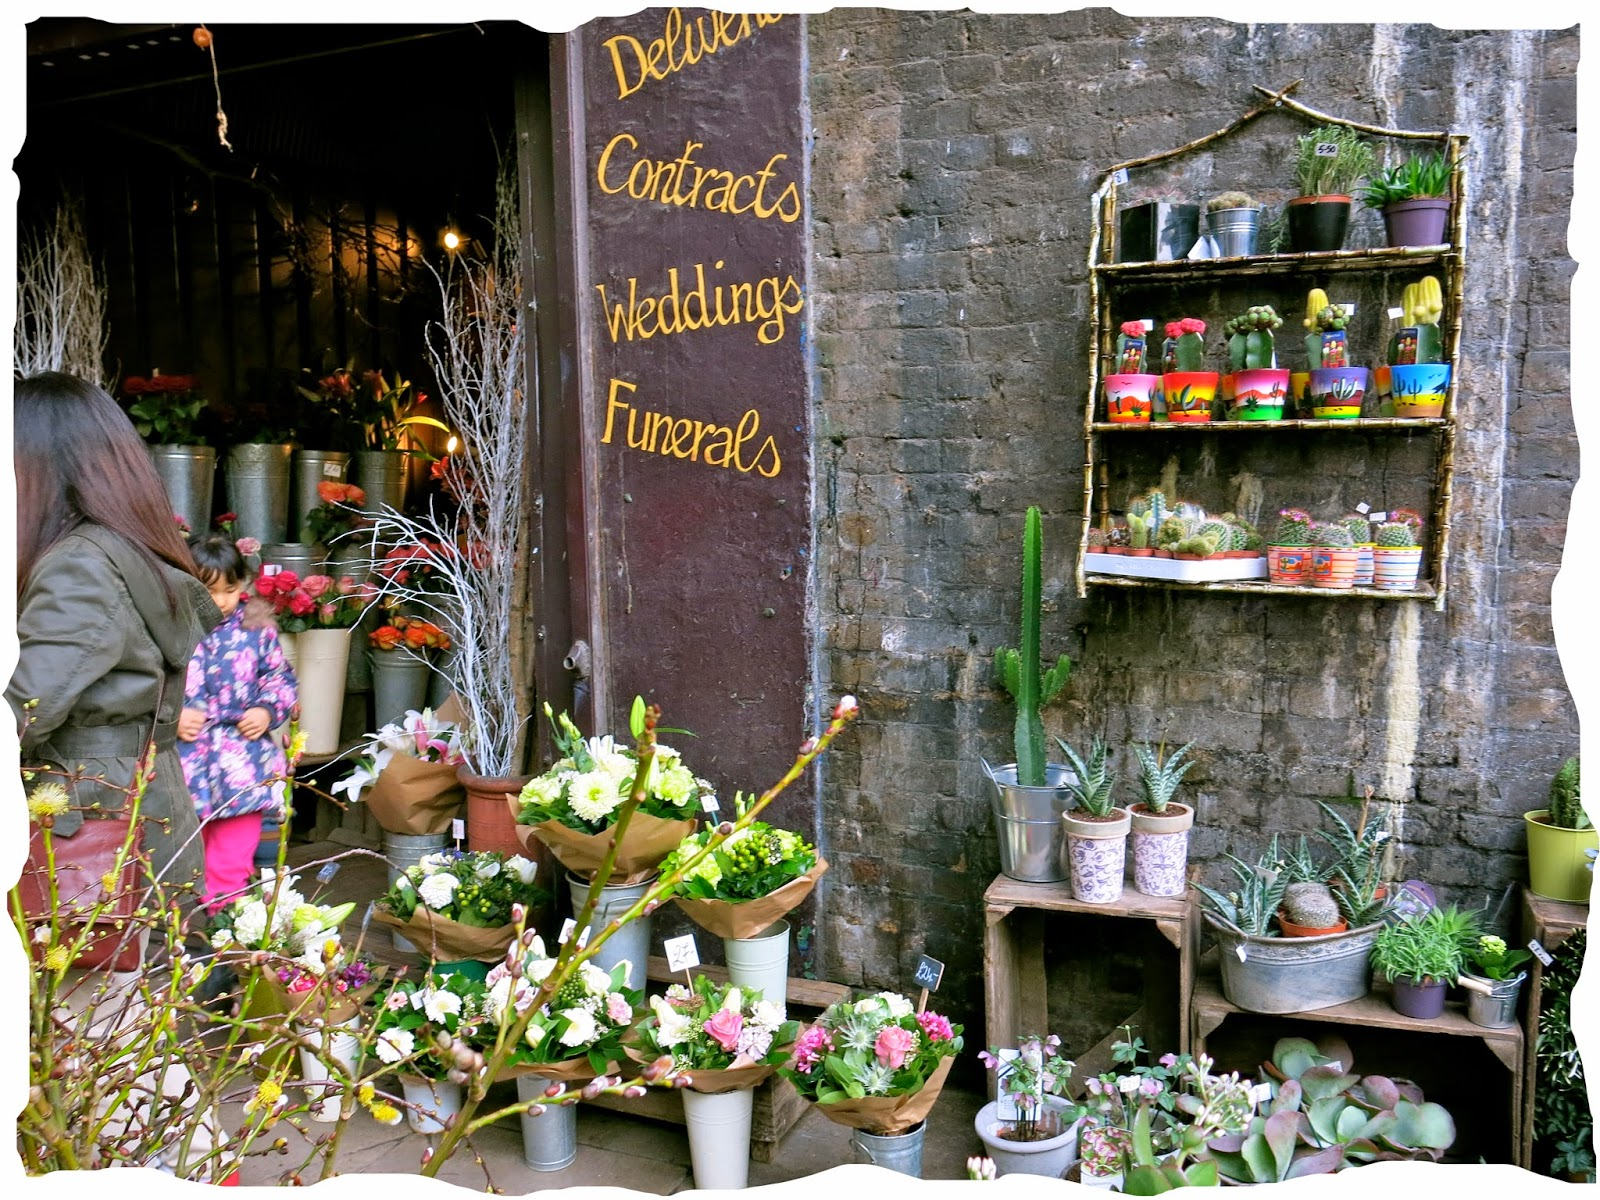 A beautiful flower shop in london avril phua a beautiful flower shop in london izmirmasajfo Gallery